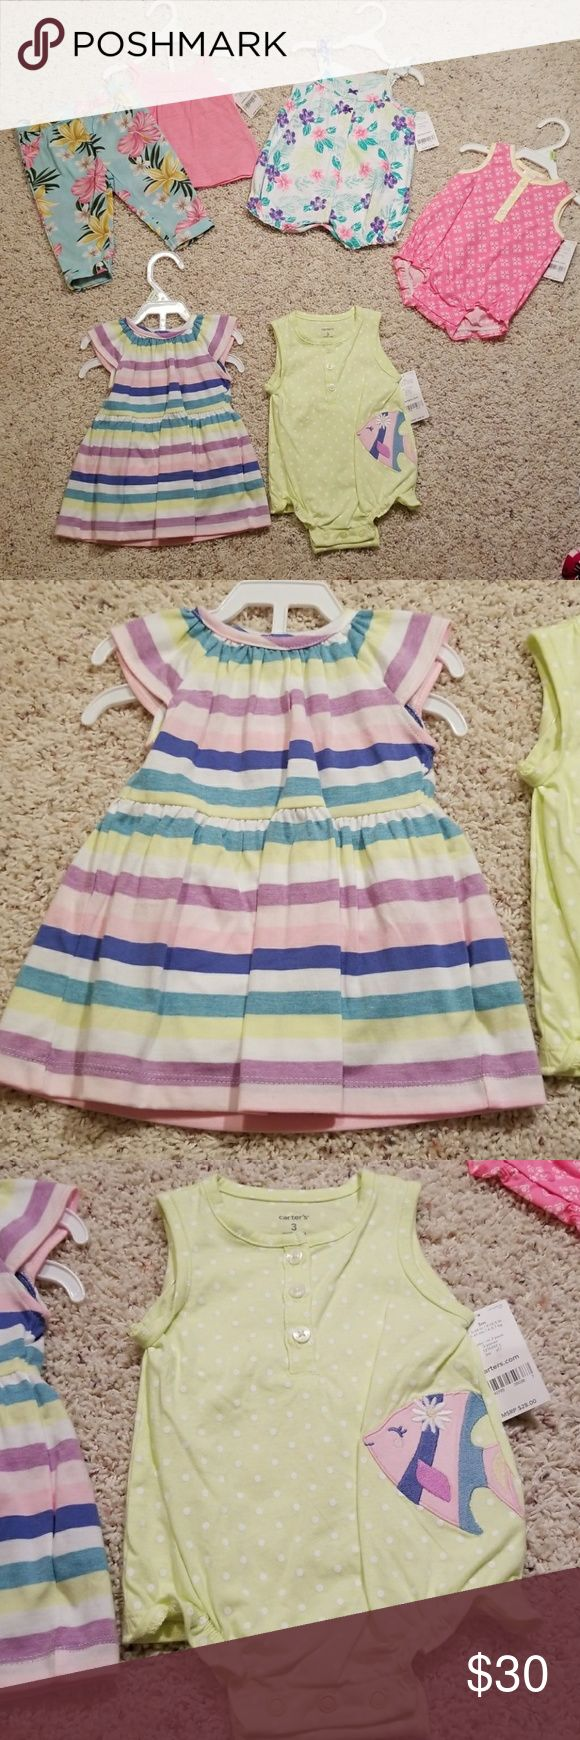 Carter's 7-piece Lot NWT Carter's Lot All 7 pieces are brand new with tags attached from Carter's store Size 3 months  Thanks for looking and happy shopping! Carter's Matching Sets